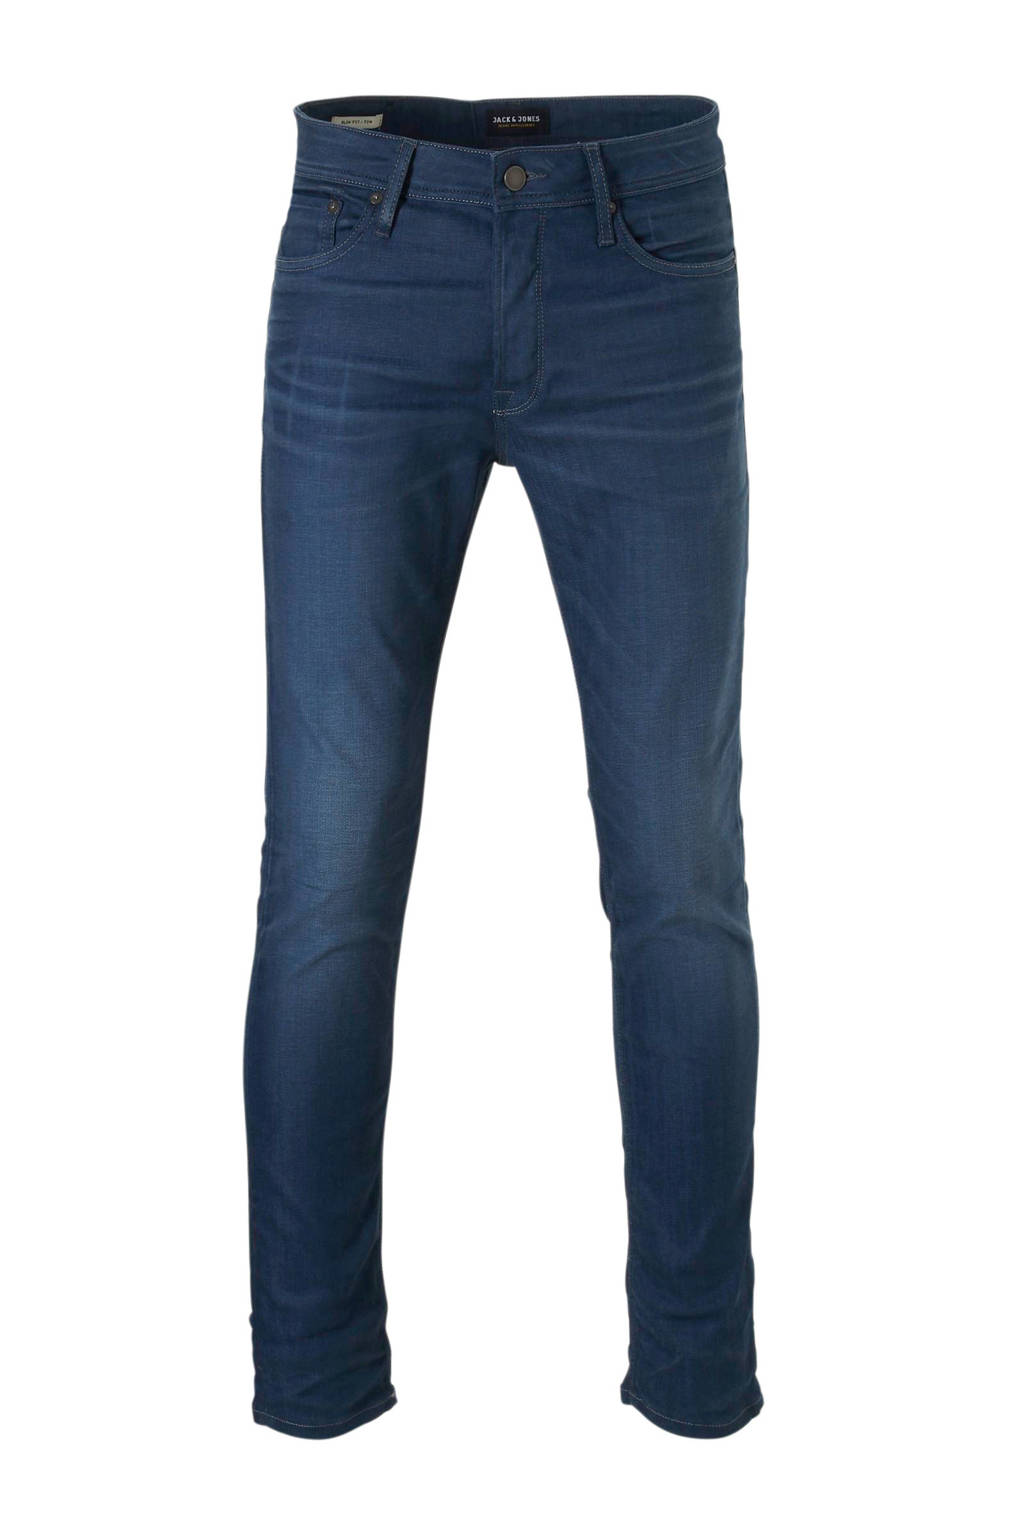 Jack & Jones Intelligence  slim slim fit jeans, Dark denim